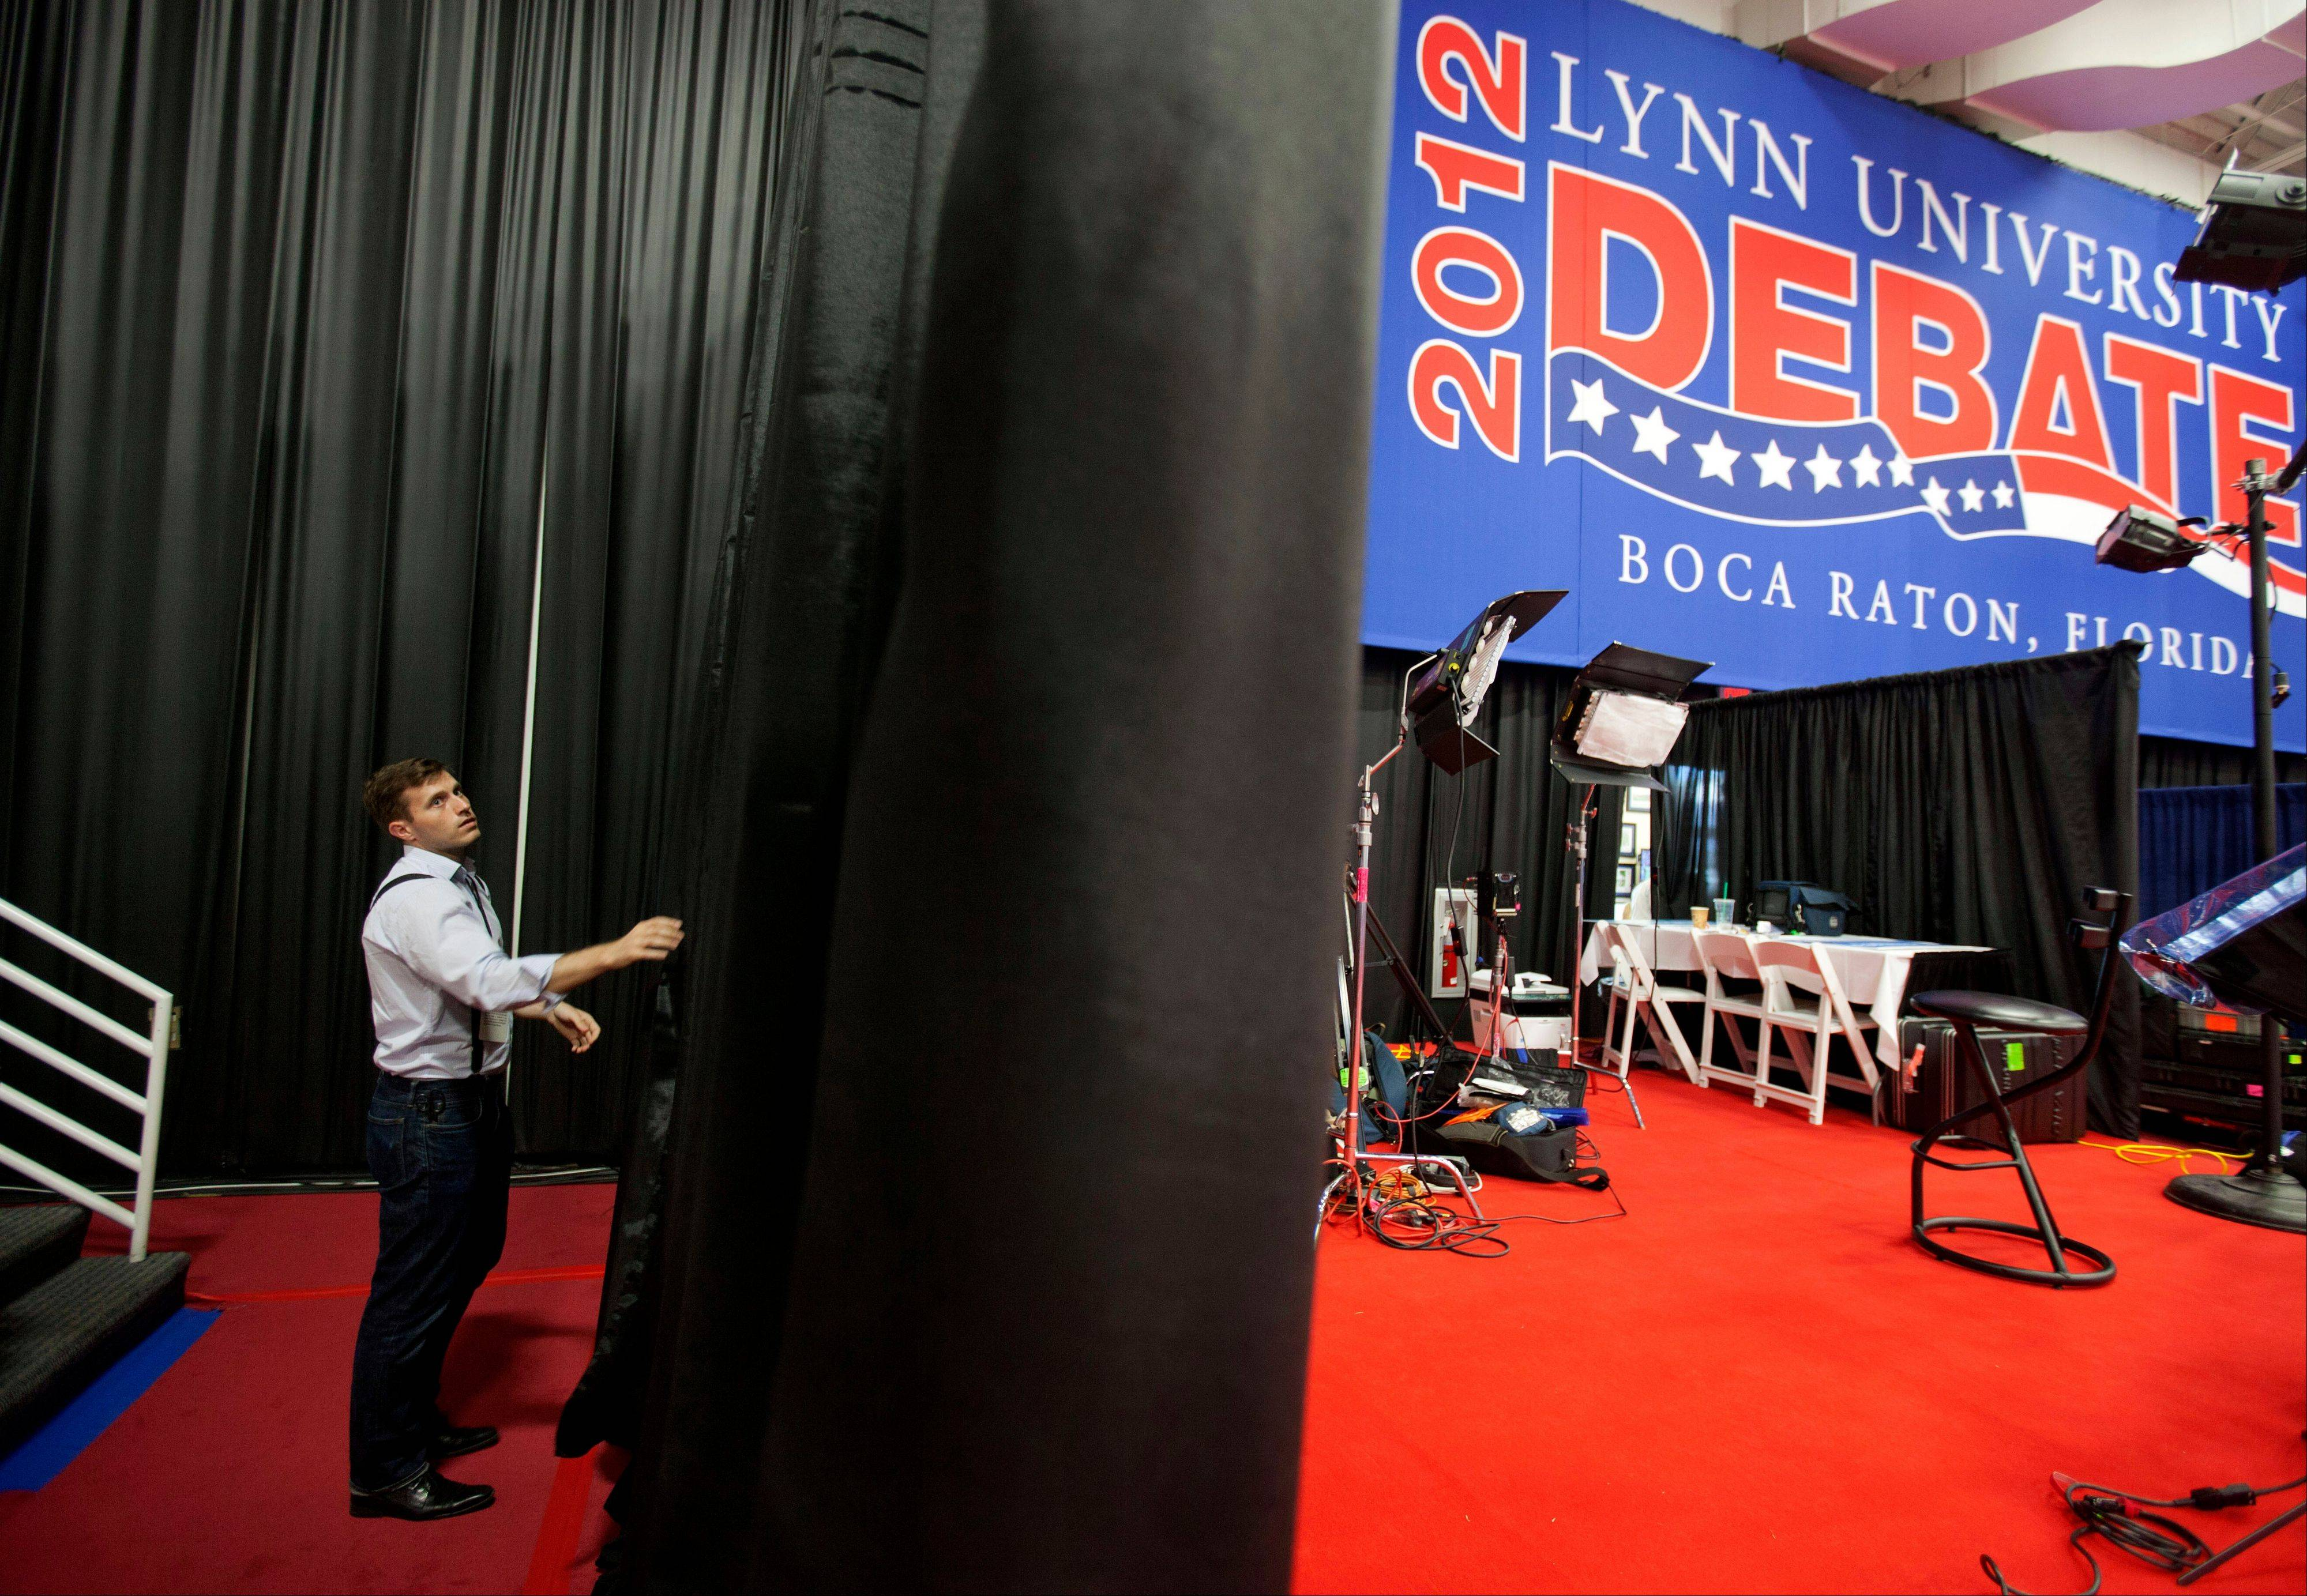 A campaign worker works on the set for the spin corner for the President Barack Obama campaign in the media center ahead of Monday's presidential debate between Republican presidential candidate, former Massachusetts Gov. Mitt Romney and Obama, Sunday at Lynn University in Boca Raton, Fla.